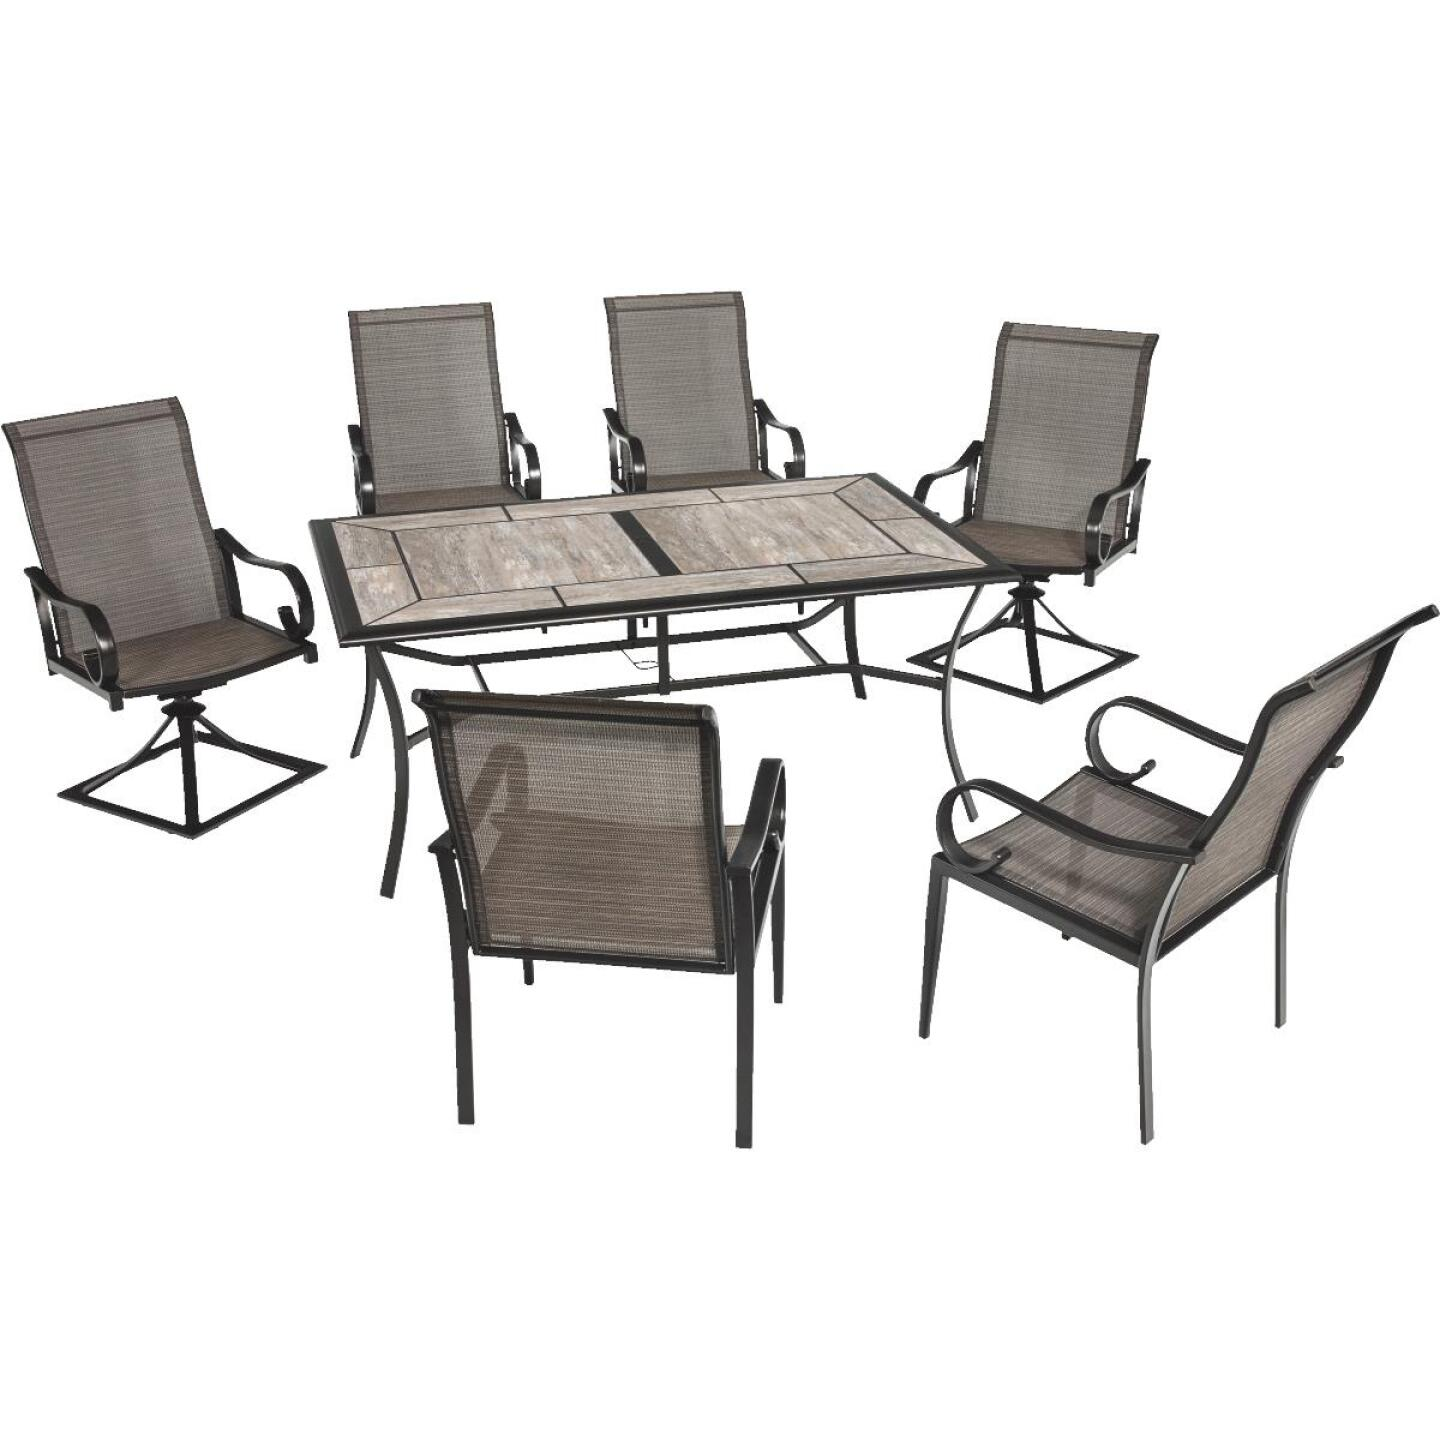 Outdoor Expressions Berkshire 7-Piece Dining Set Image 159